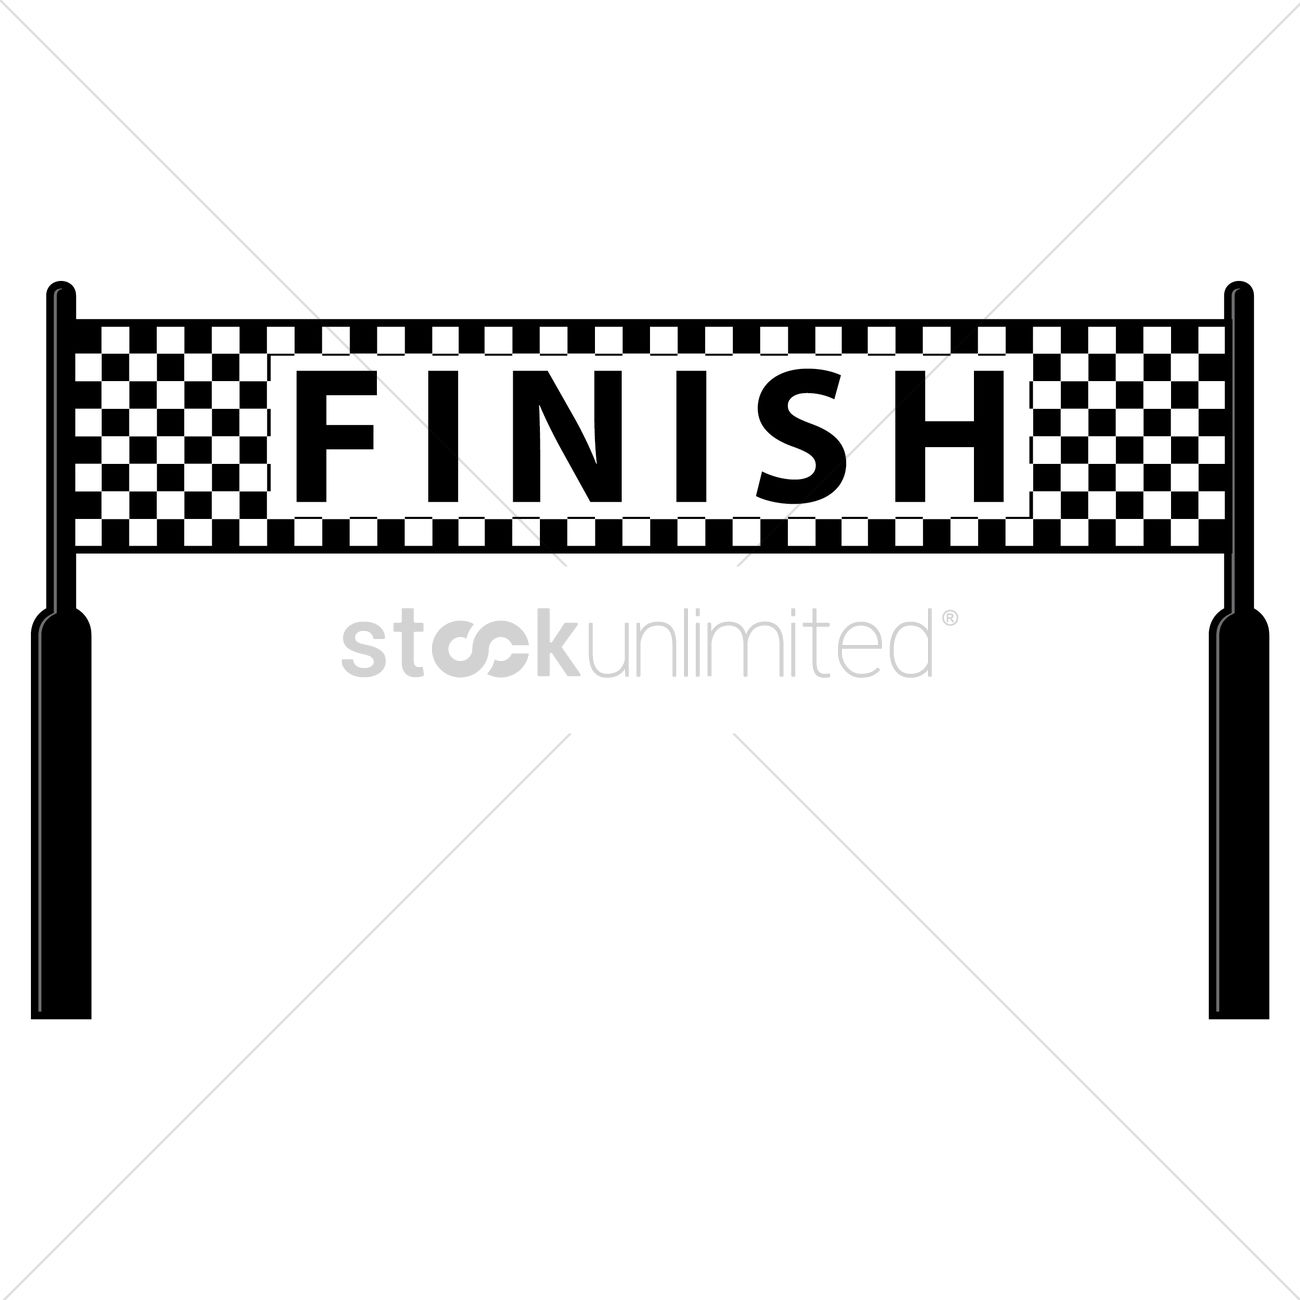 885 Finish Line free clipart.